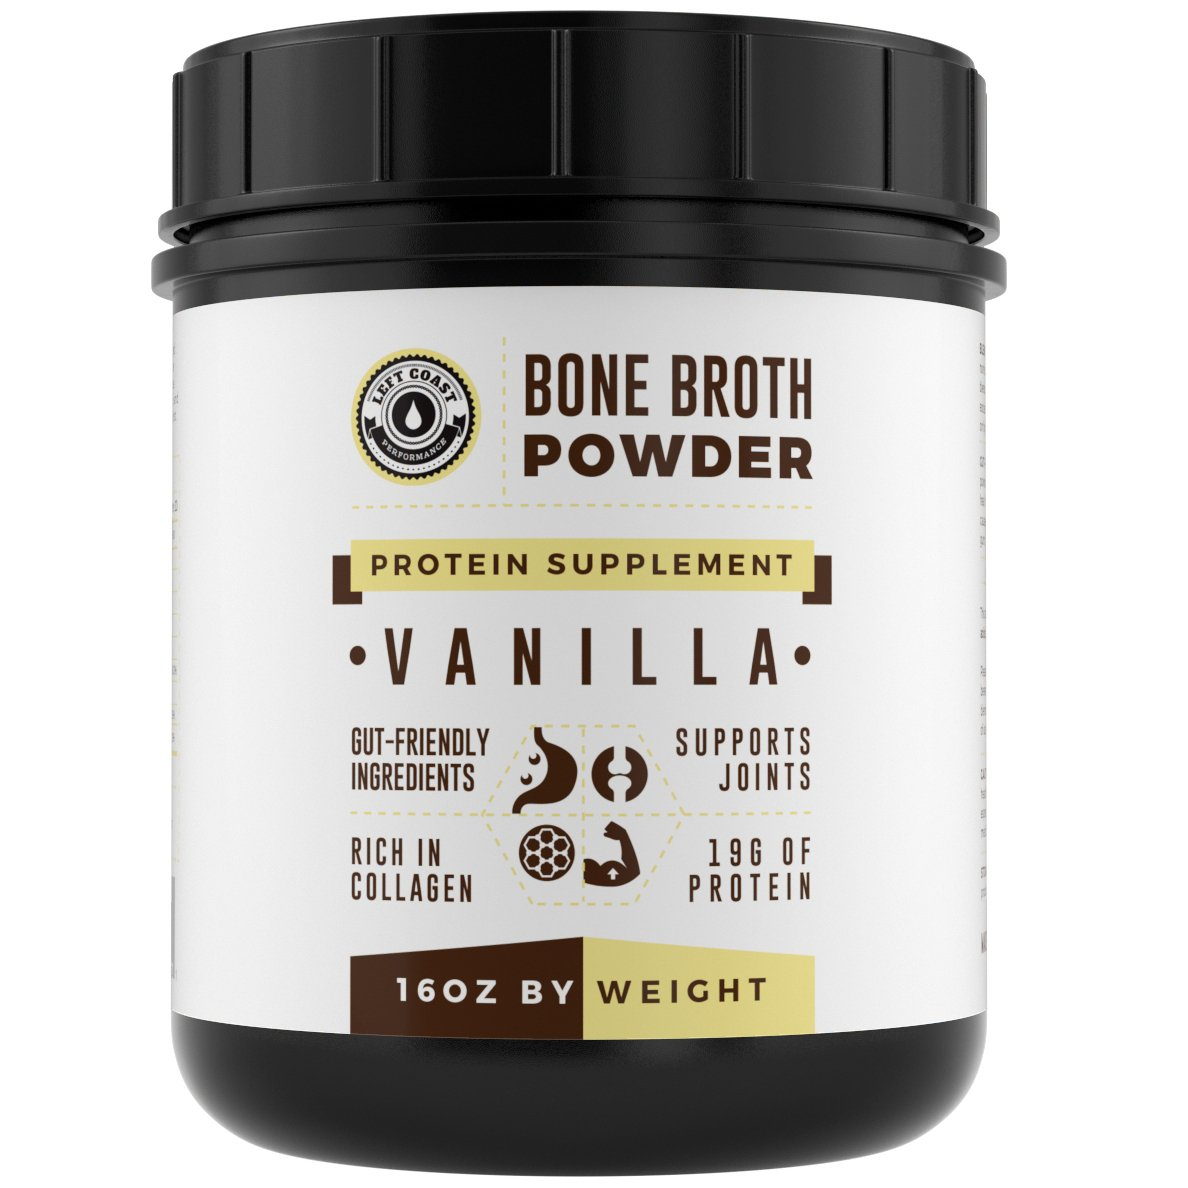 Bone Broth Protein Powder Vanilla 16Oz, Grass Fed - Non-GMO, Gut-Friendly, Dairy Free Protein Powder, Left Coast Performance by Left Coast Performance